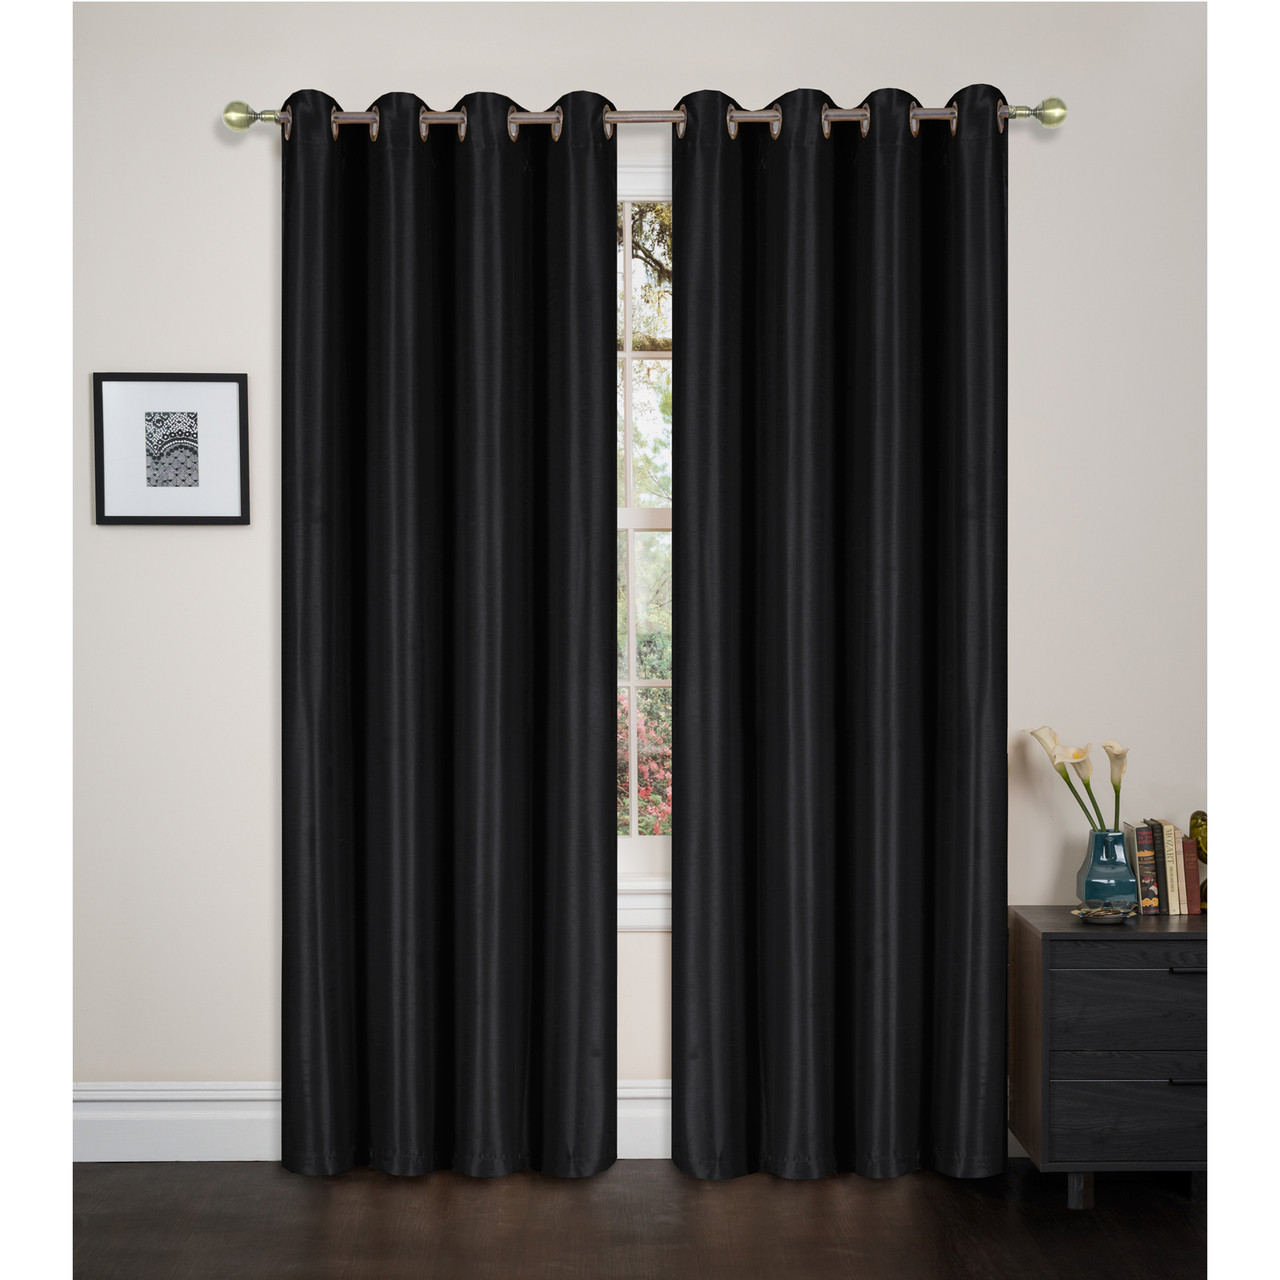 b qlt hei urban batik outfitters view constrain window blackout shop curtain xlarge slide curtains fit